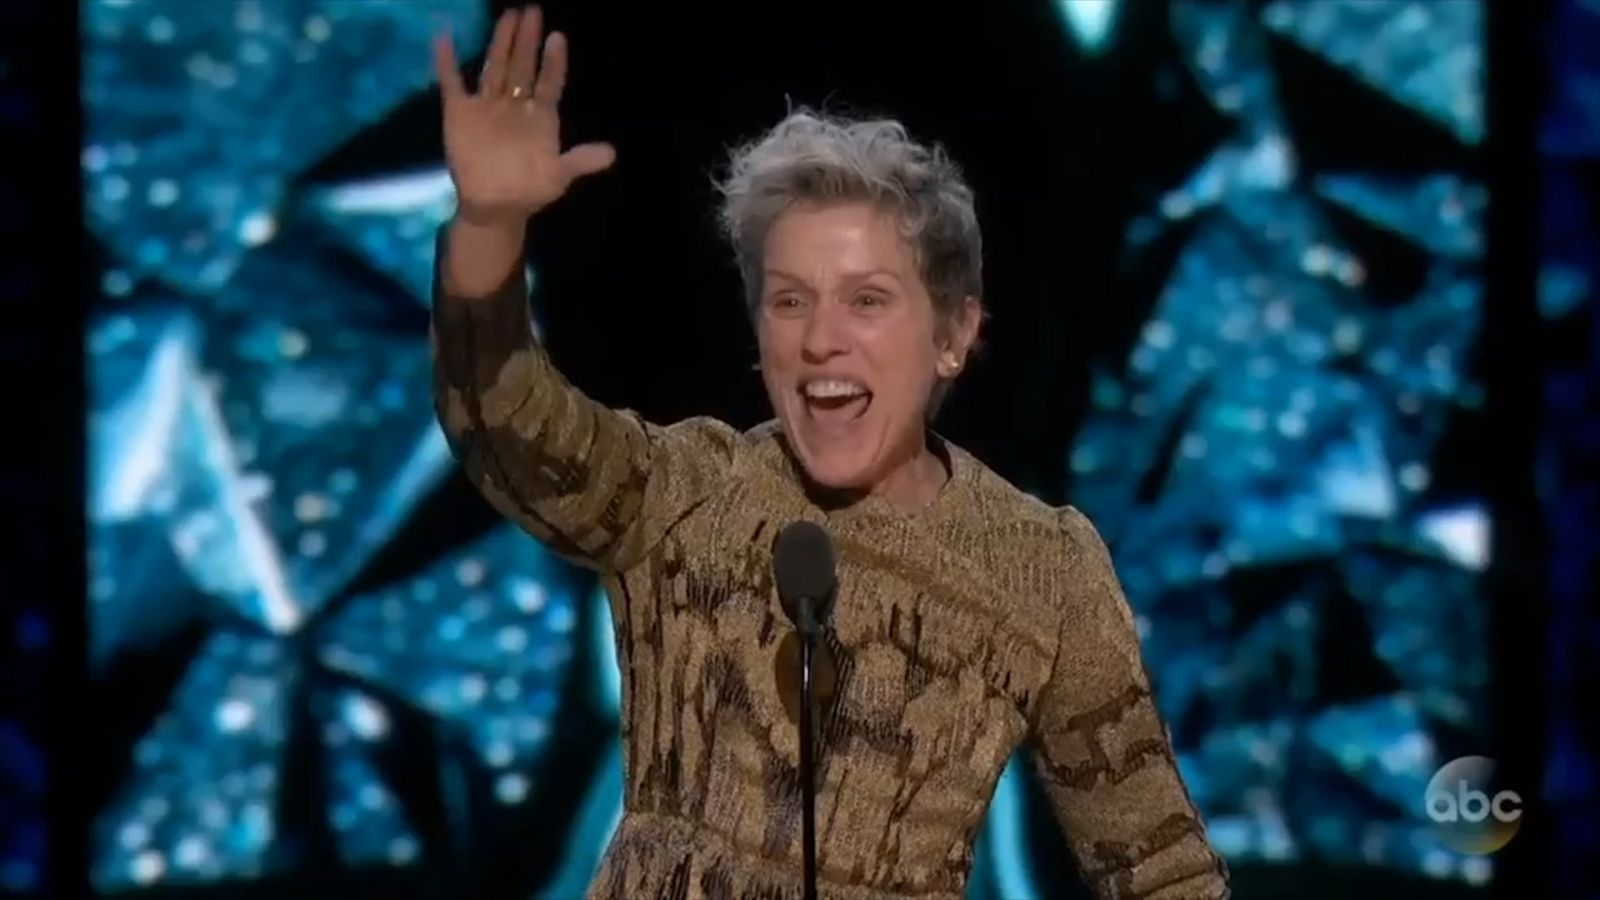 oscars-2018-best-actress-winner-frances-mcdormand-honors-female-filmmakers-two-words-inclusion-rider